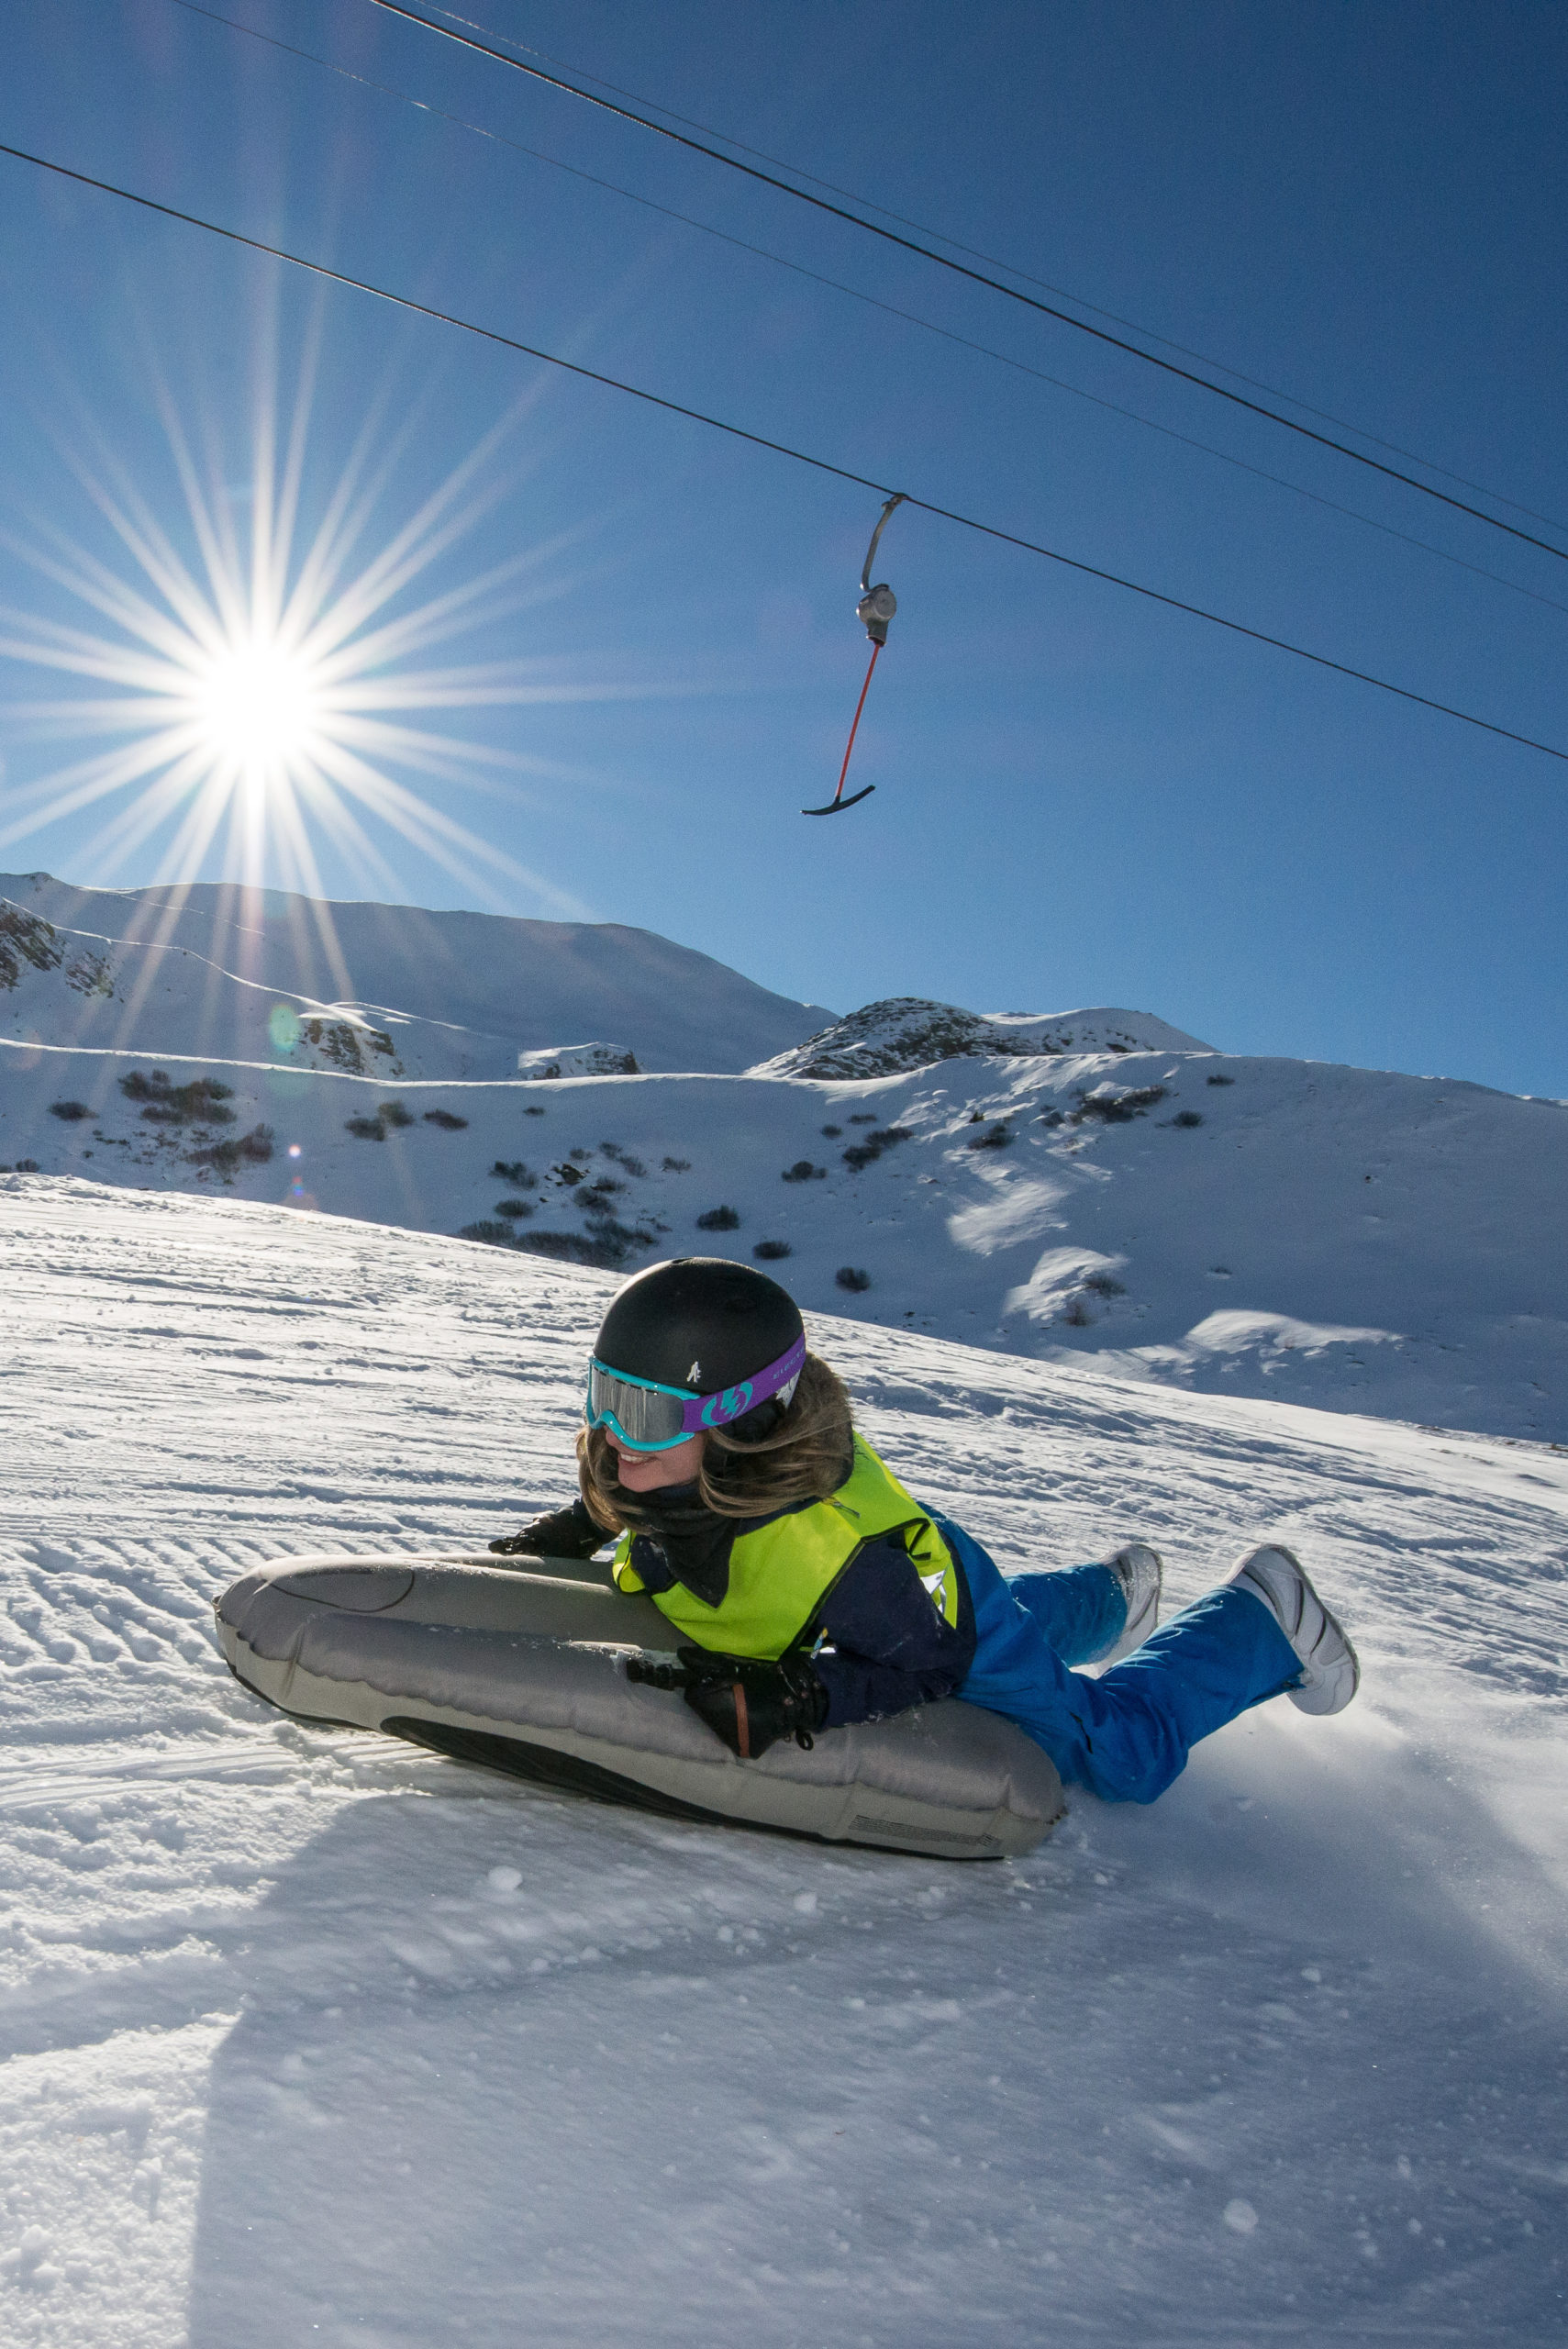 airboard_23-12-2013_2240